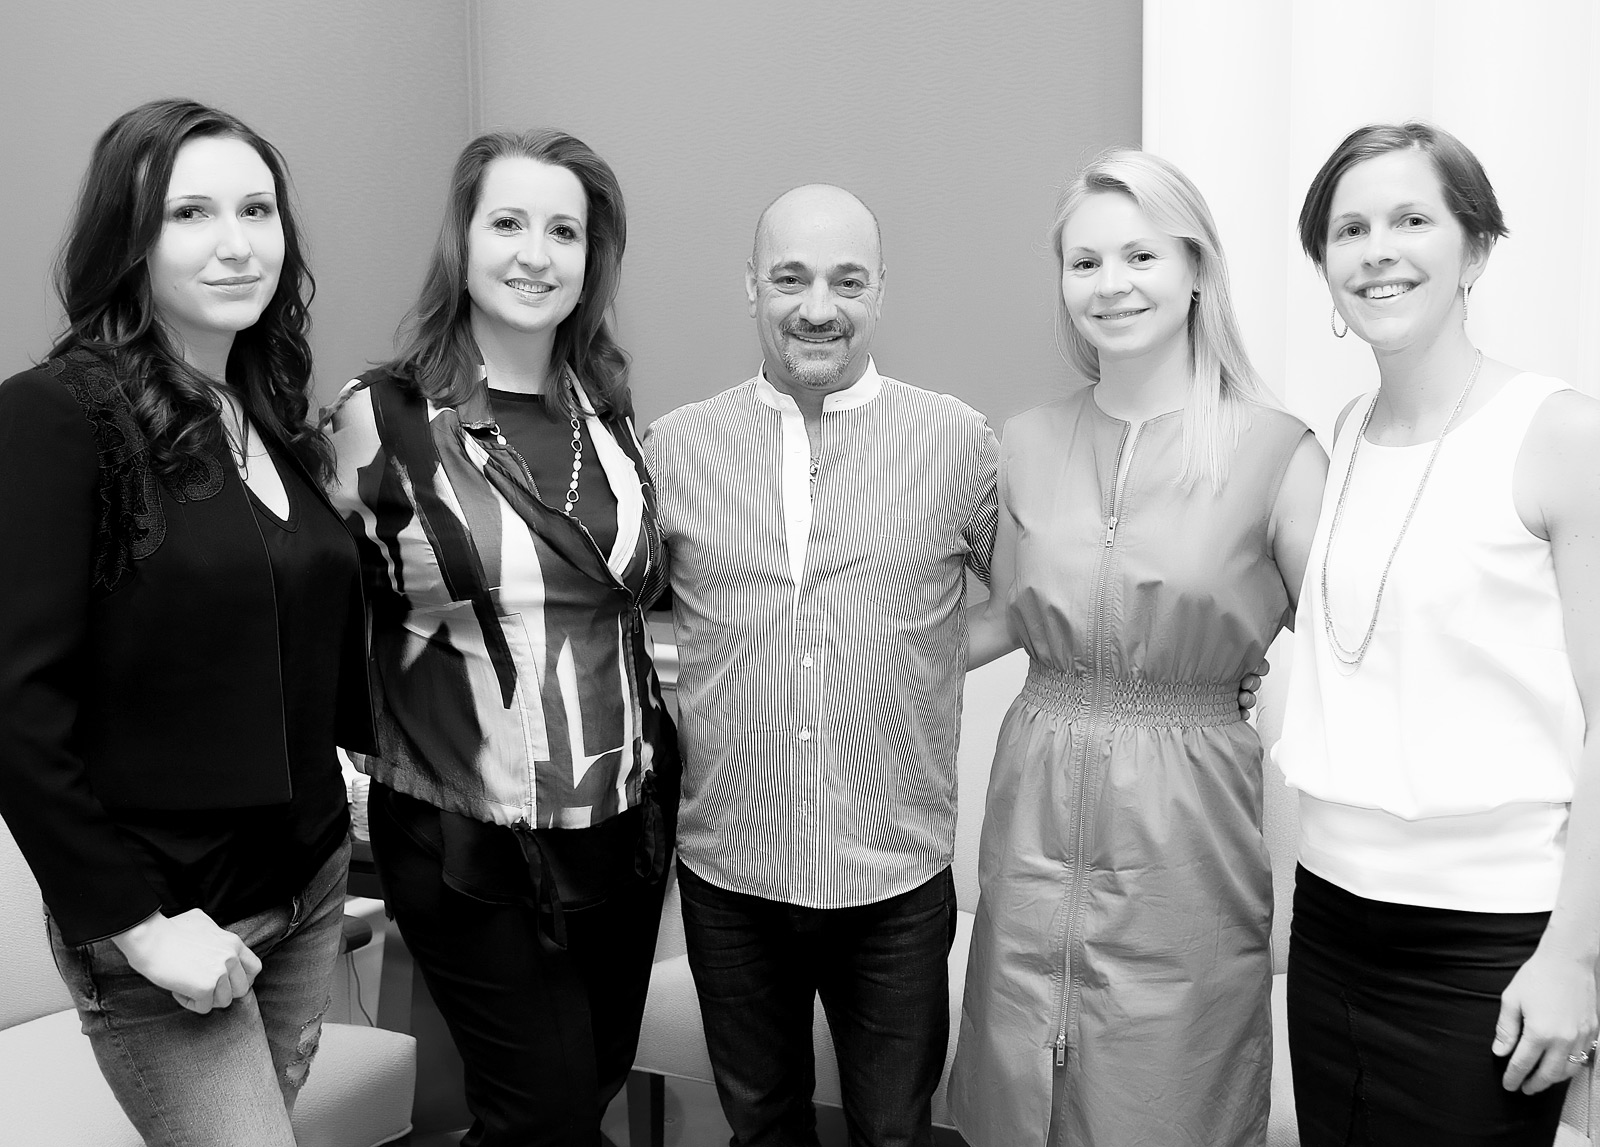 Couture Design Awards Judges: Katerina Perez, Melissa Geiser, Yossi Harari, Daisy Shaw and Julie Thom